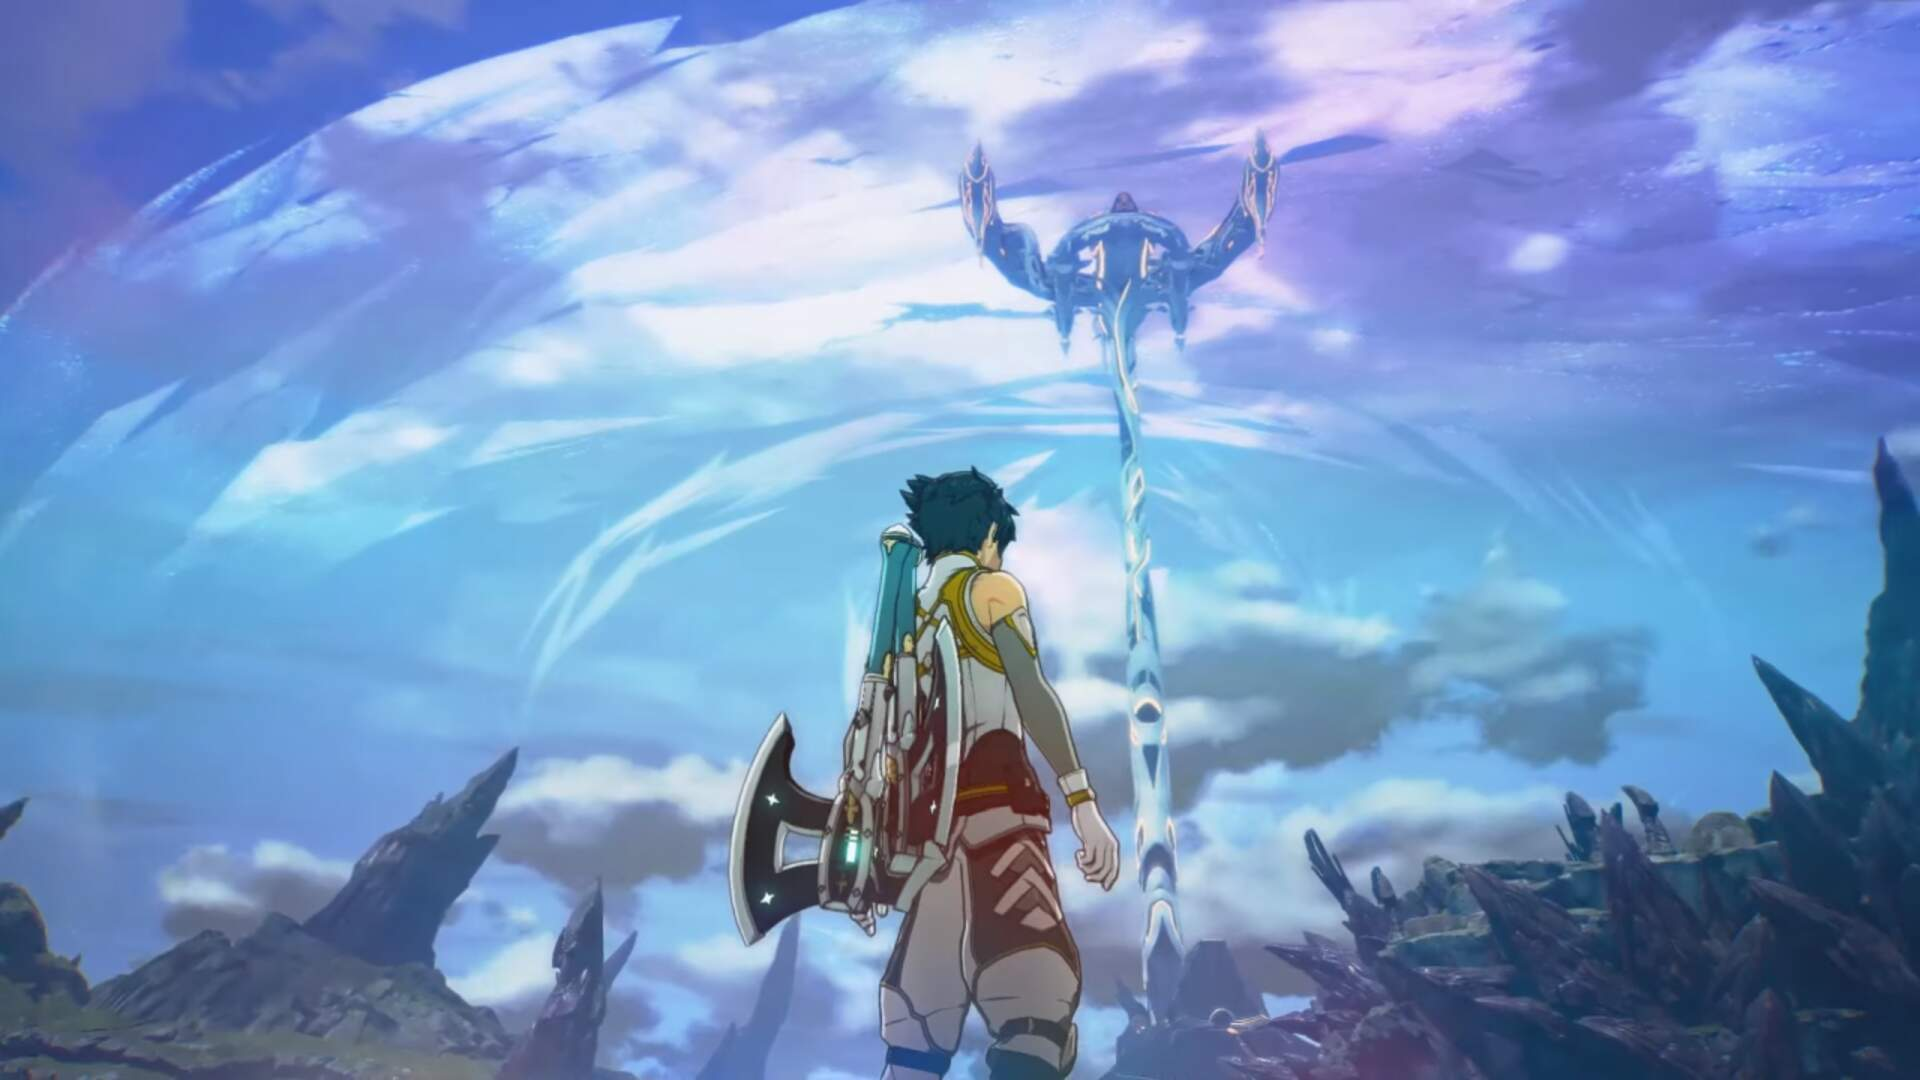 Blue Protocol, Bandai Namco's Online Multiplayer Action-RPG, Shows First Gameplay and Character Creator